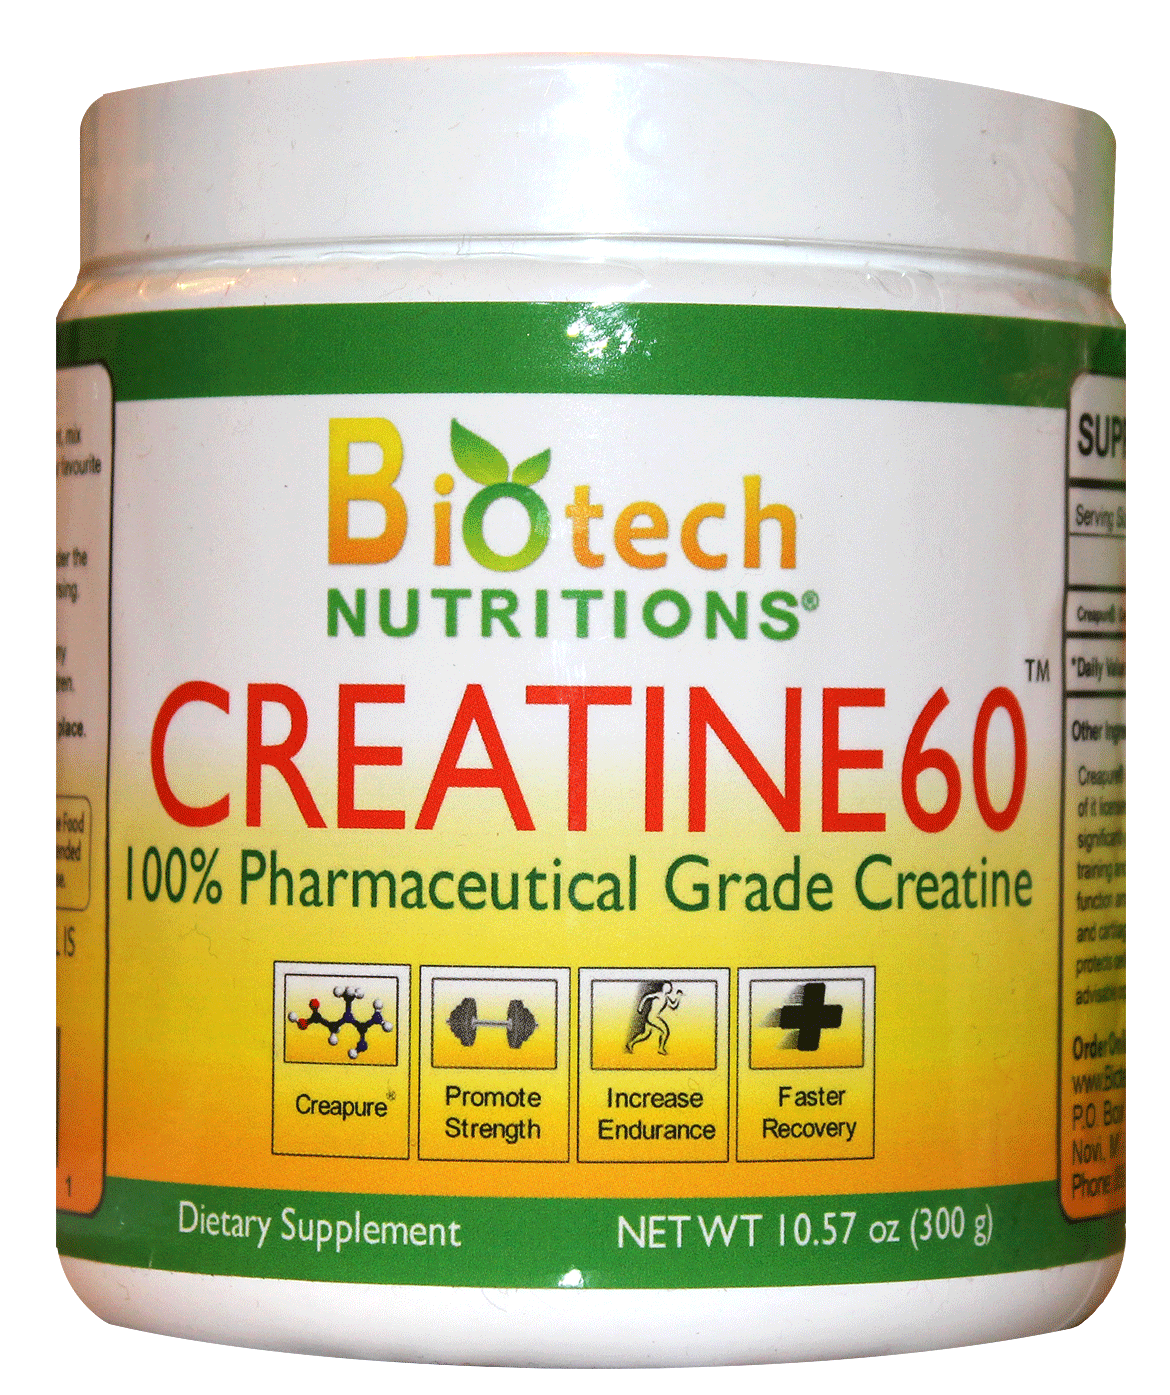 Biotech Nutritions Creatine60 Unflavored 300g 60 Servings